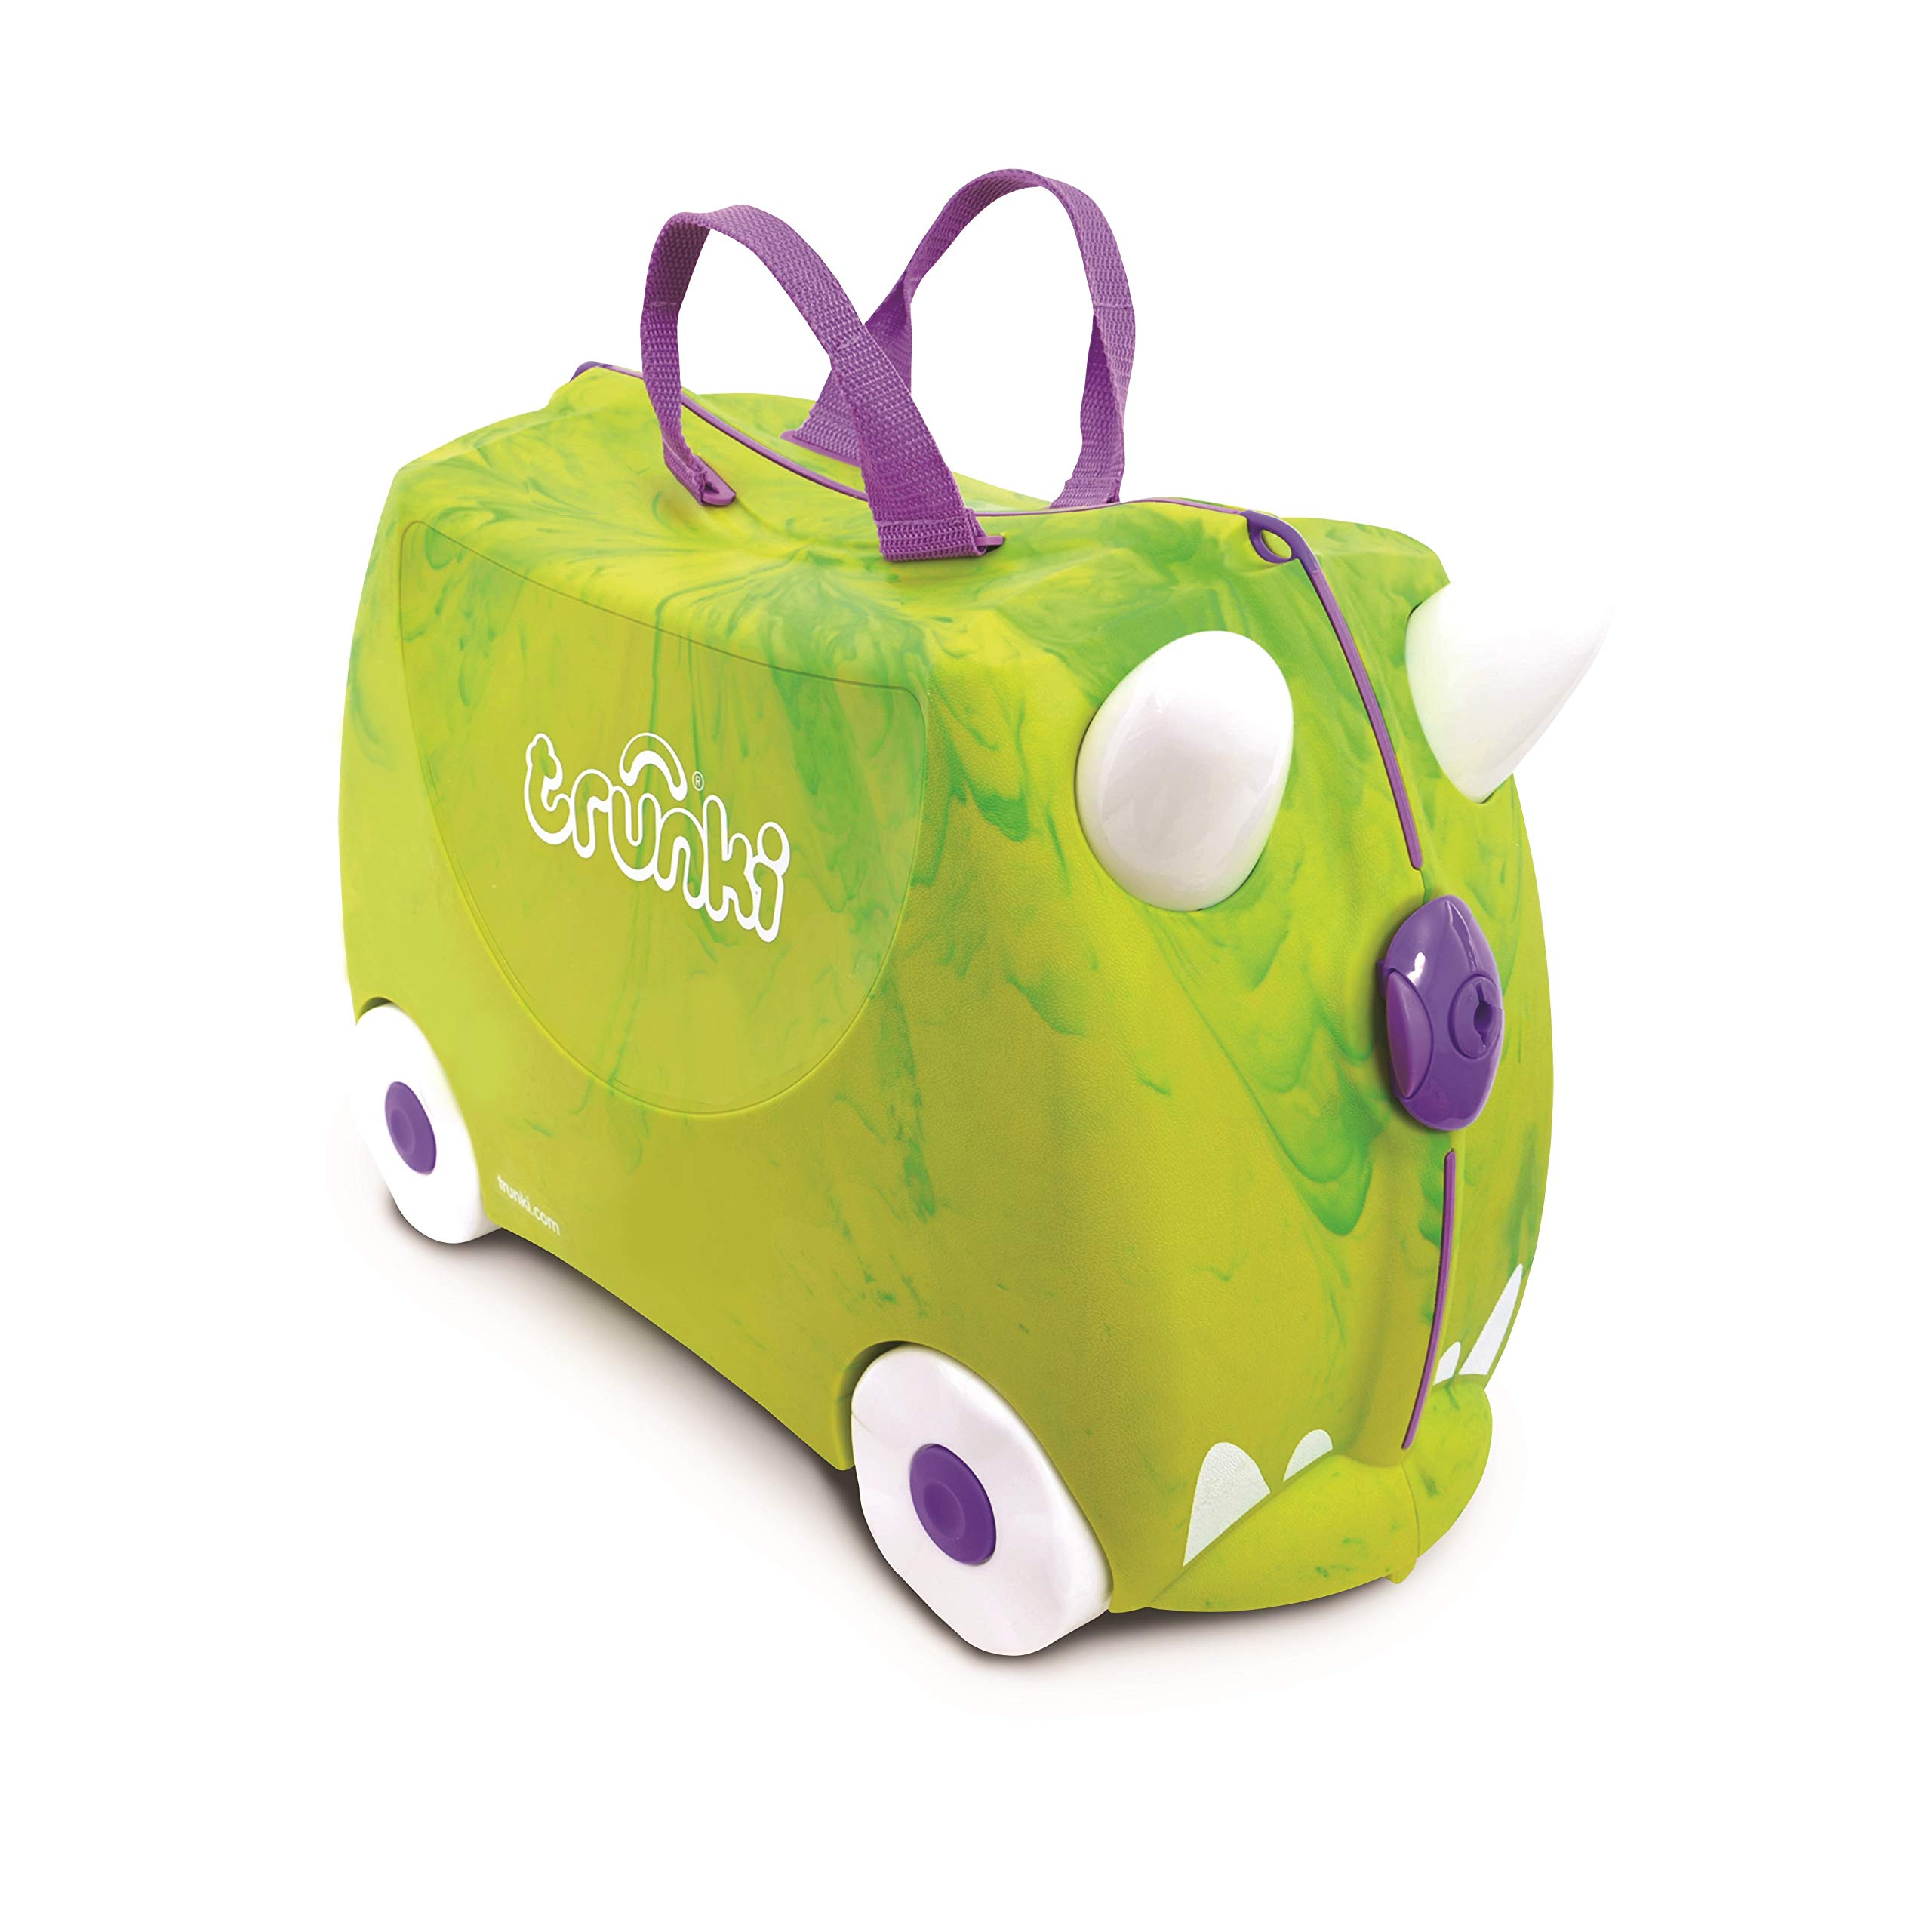 Trunki Children s Ride-On Suitcase   Hand Luggage  Trunkisaurus Rex (Green) 176cd92544b7d